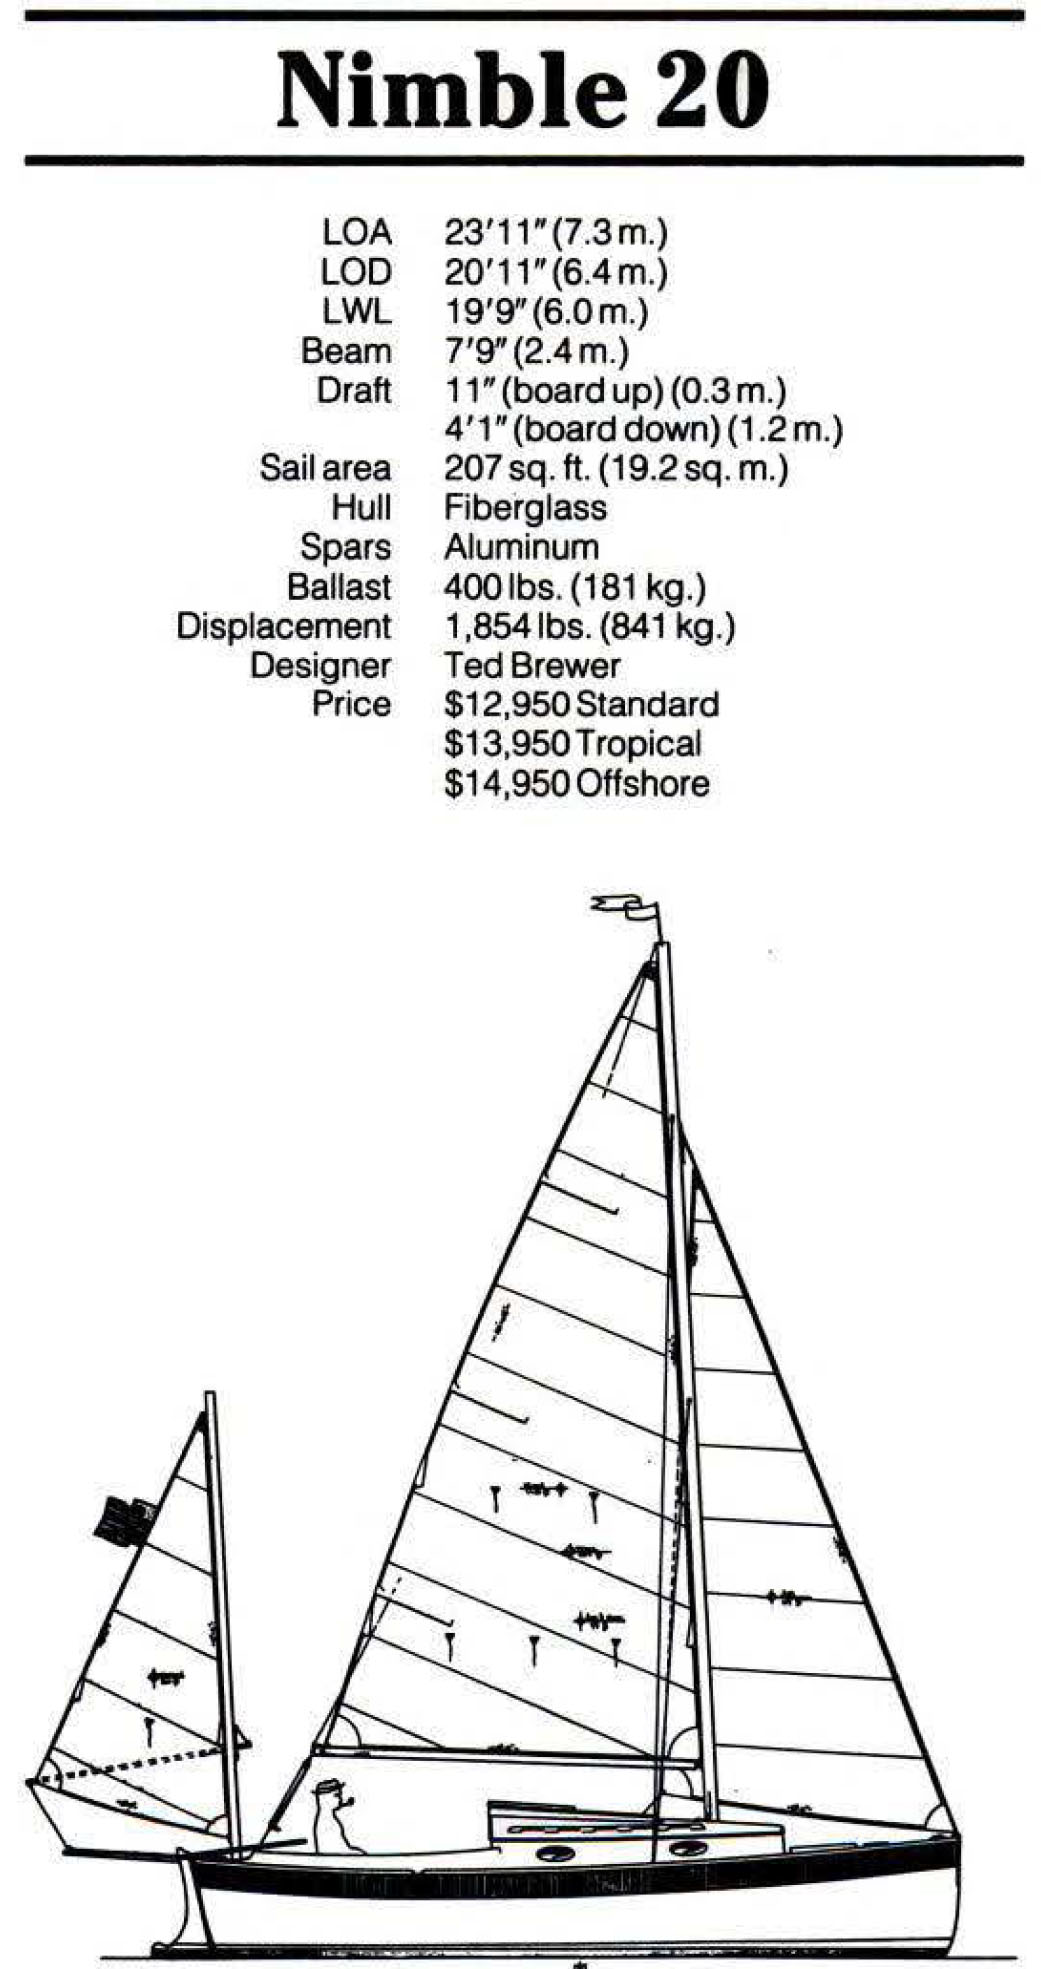 Nimble 20 Sailboat Information and Specifications